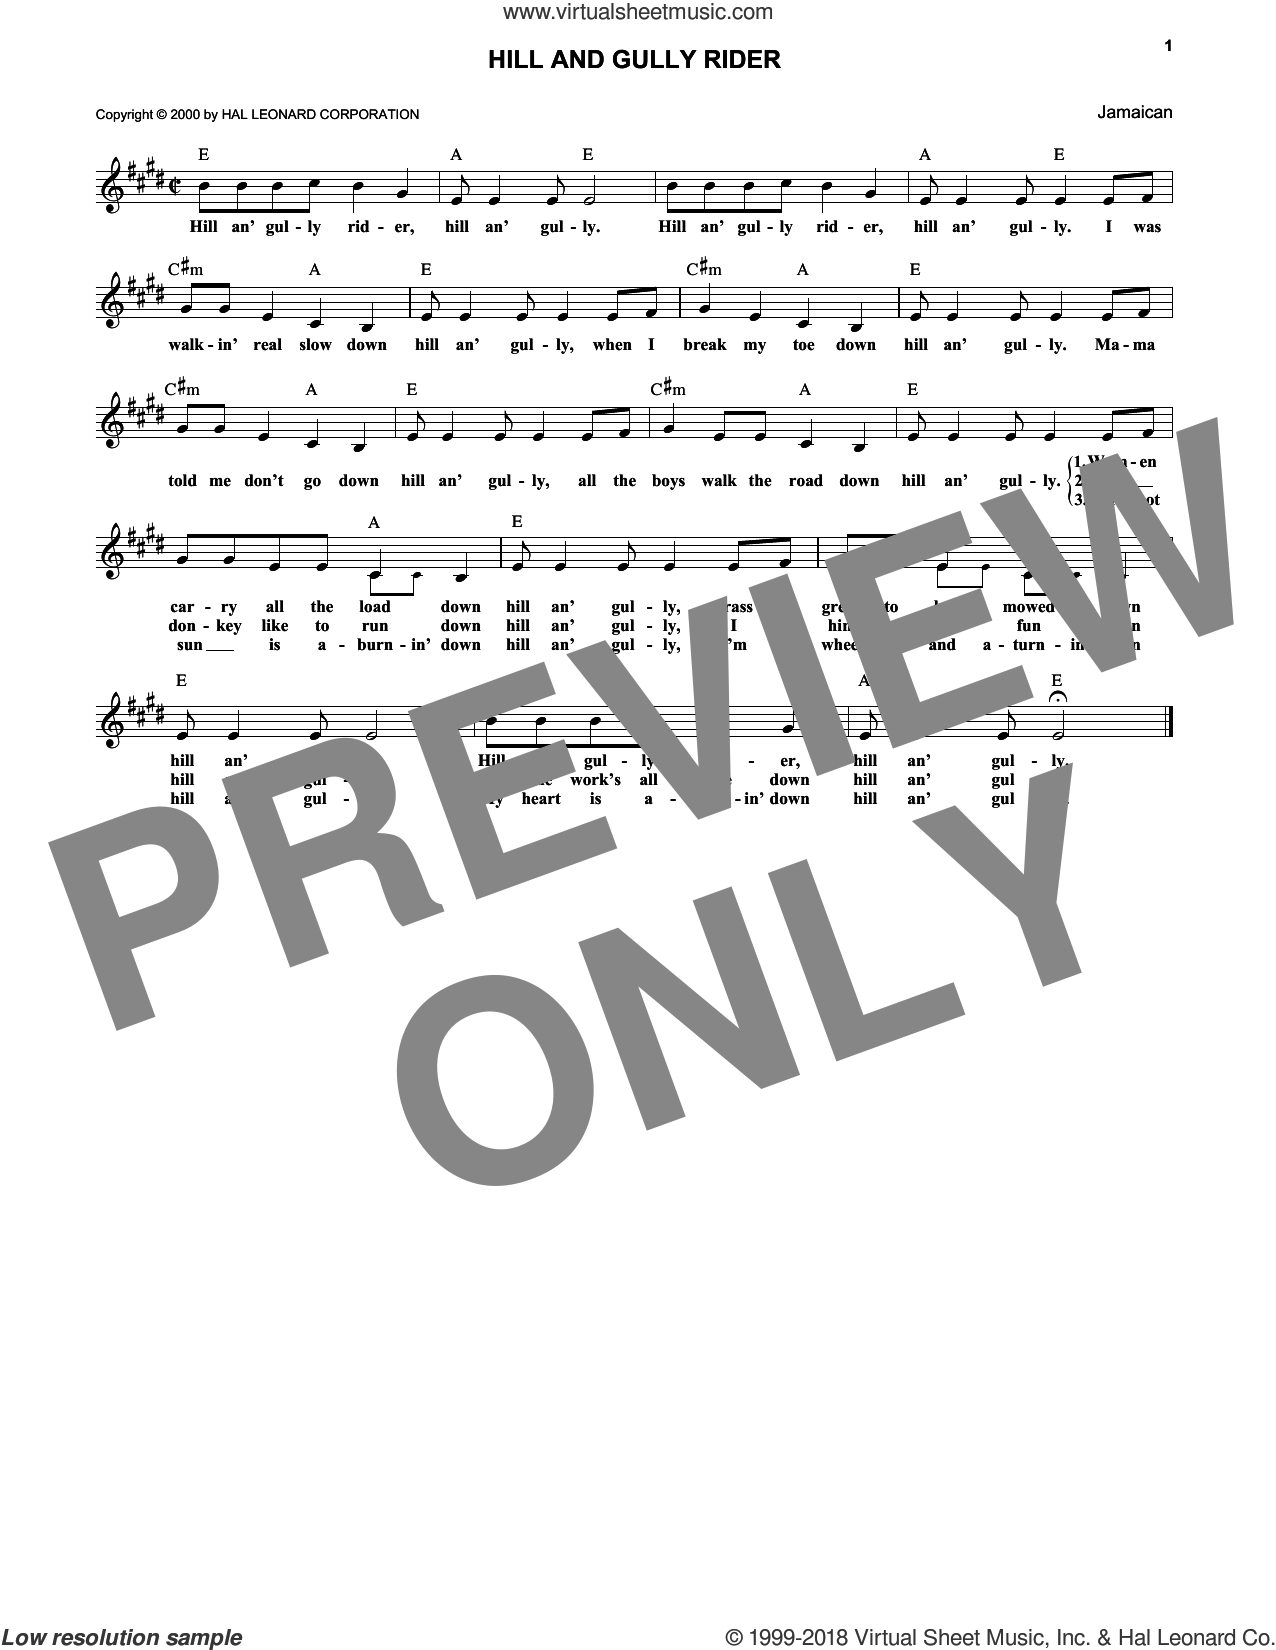 Hill And Gully Rider sheet music for voice and other instruments (fake book) by Caribbean